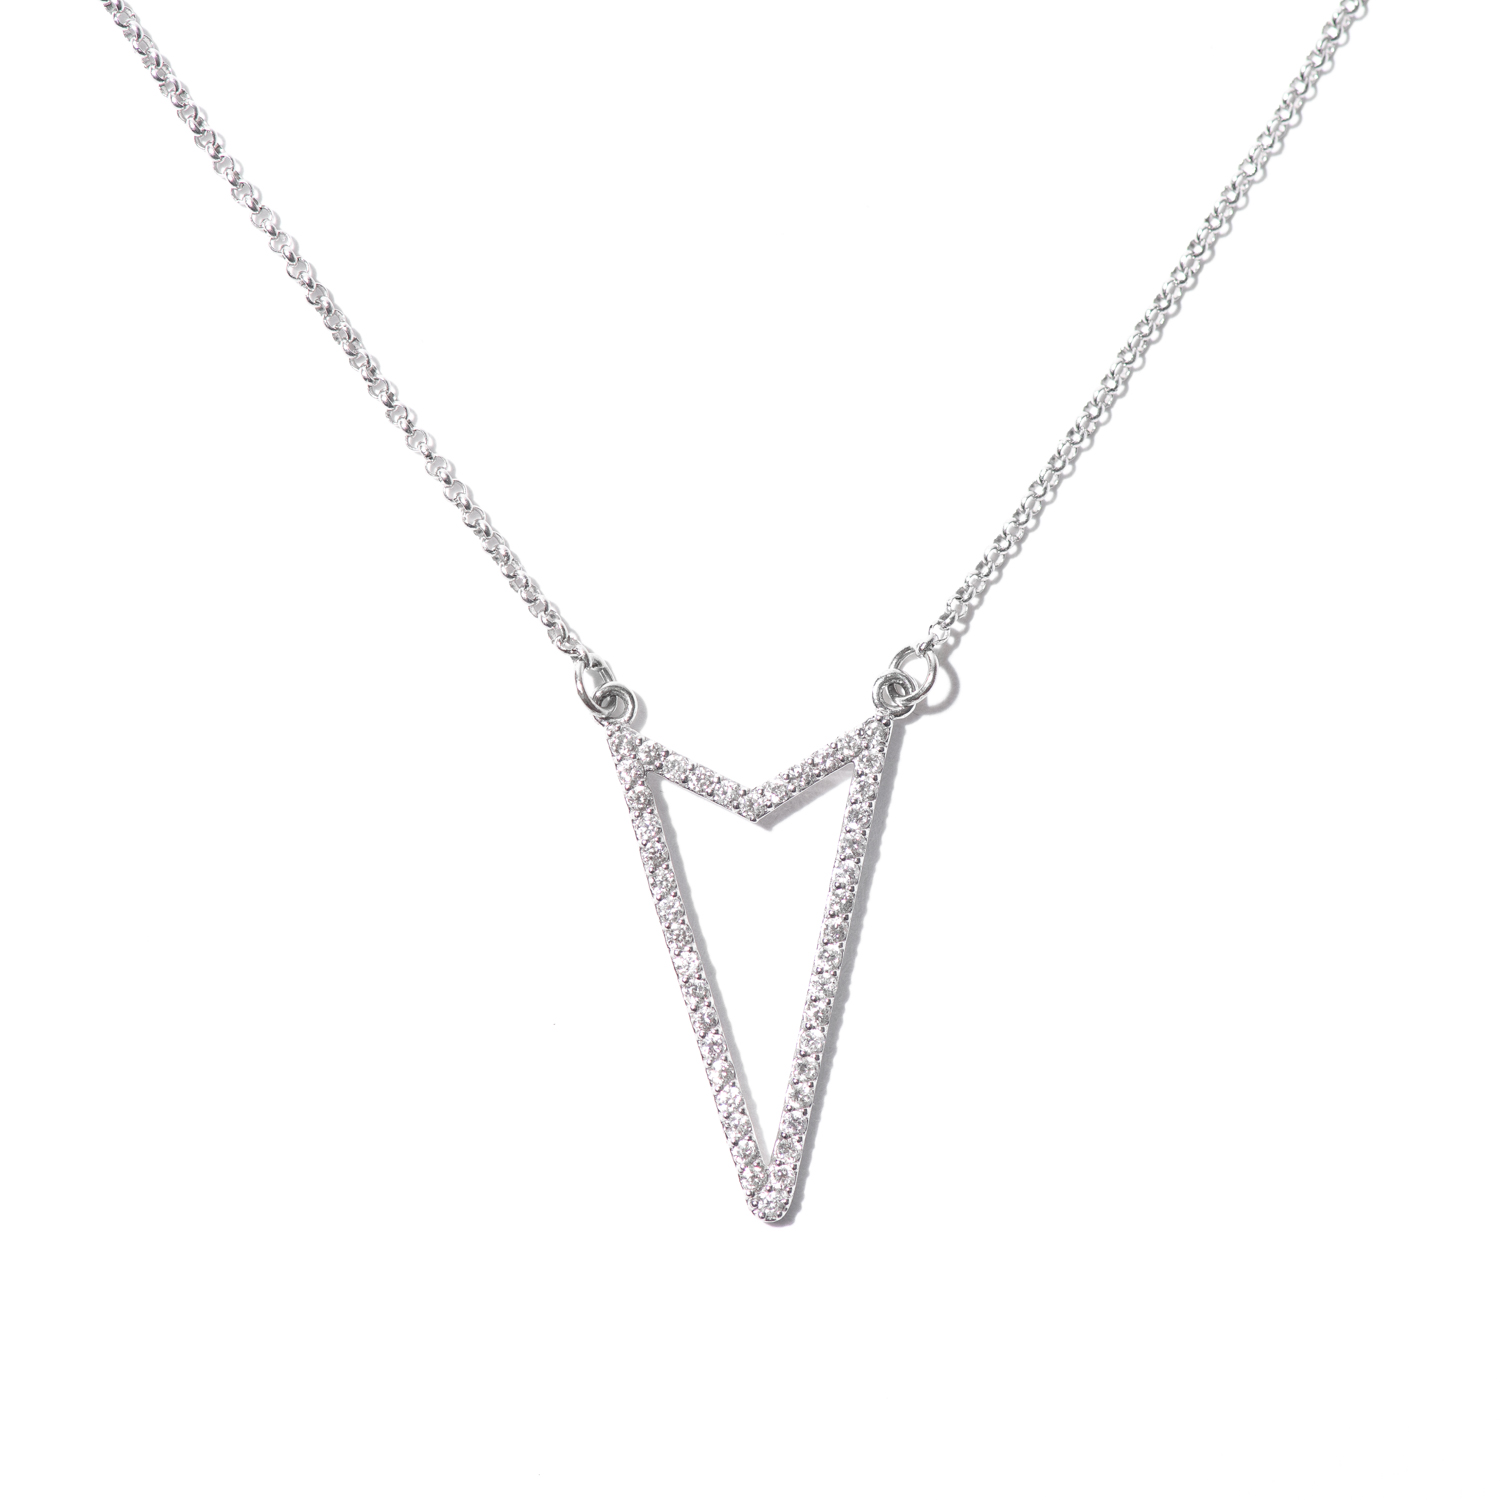 Design Thirteen. - Geometric Diamond Necklace